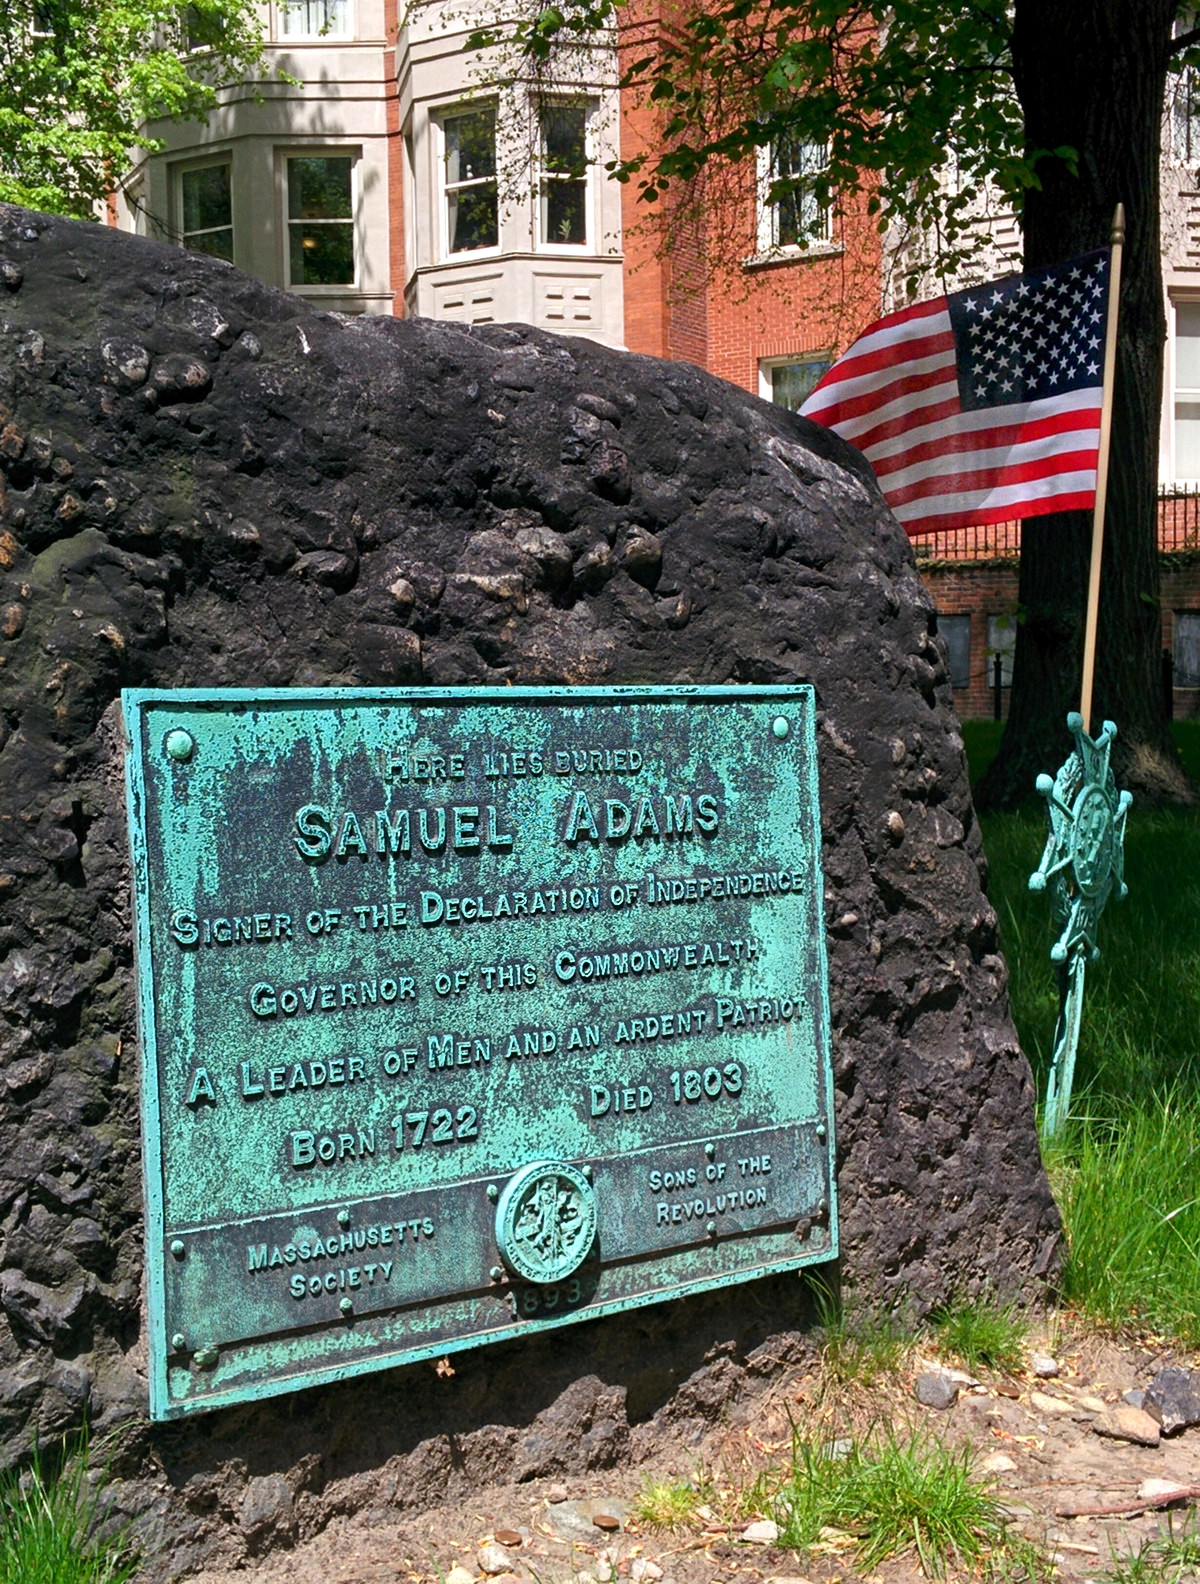 Samuel Adams's memorial at the Granary Burying Ground